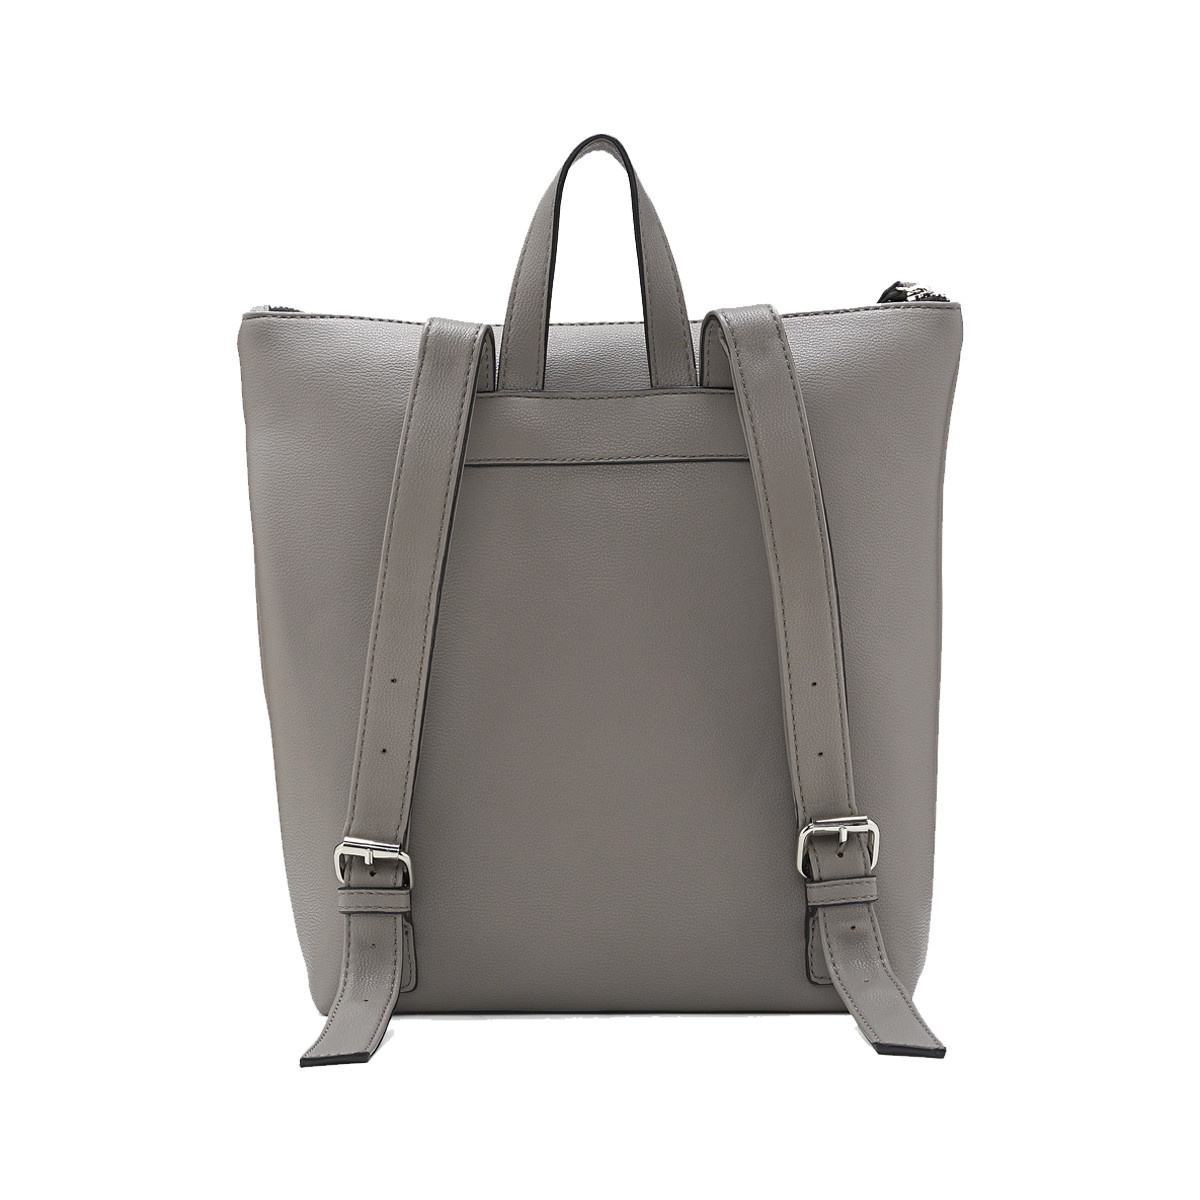 Colab Colab Pebble 2.0 Laptop Backpack